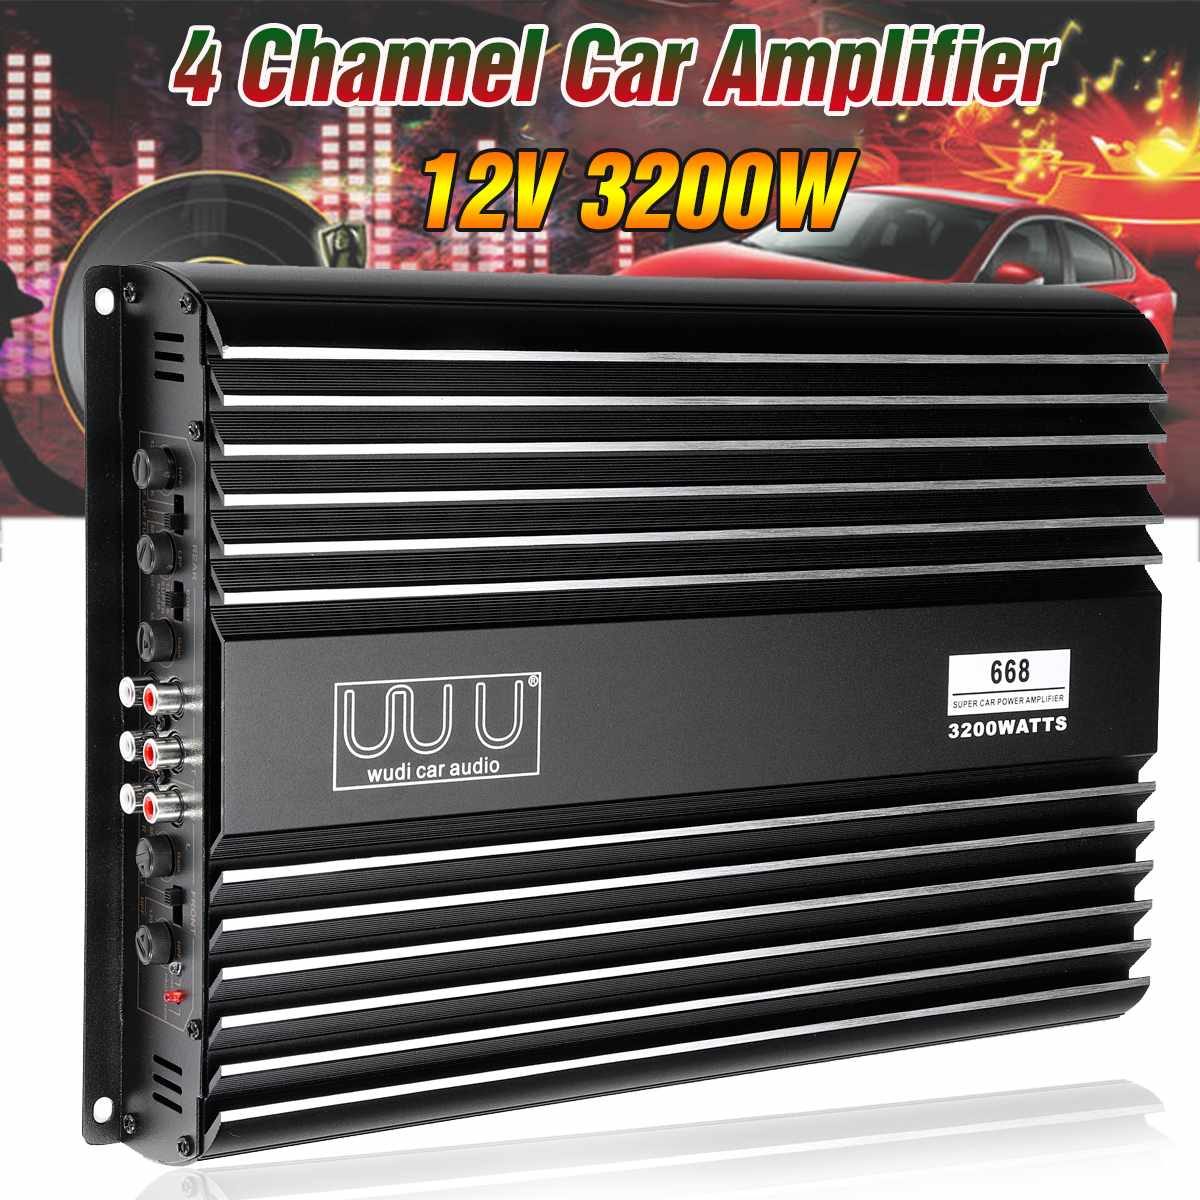 3200W 12V 4.1 Channel Car Audio Amplifier Vehicle Car Amplifier Speaker Stereo Audio Super Bass Subwoofer Prower Auto Amp